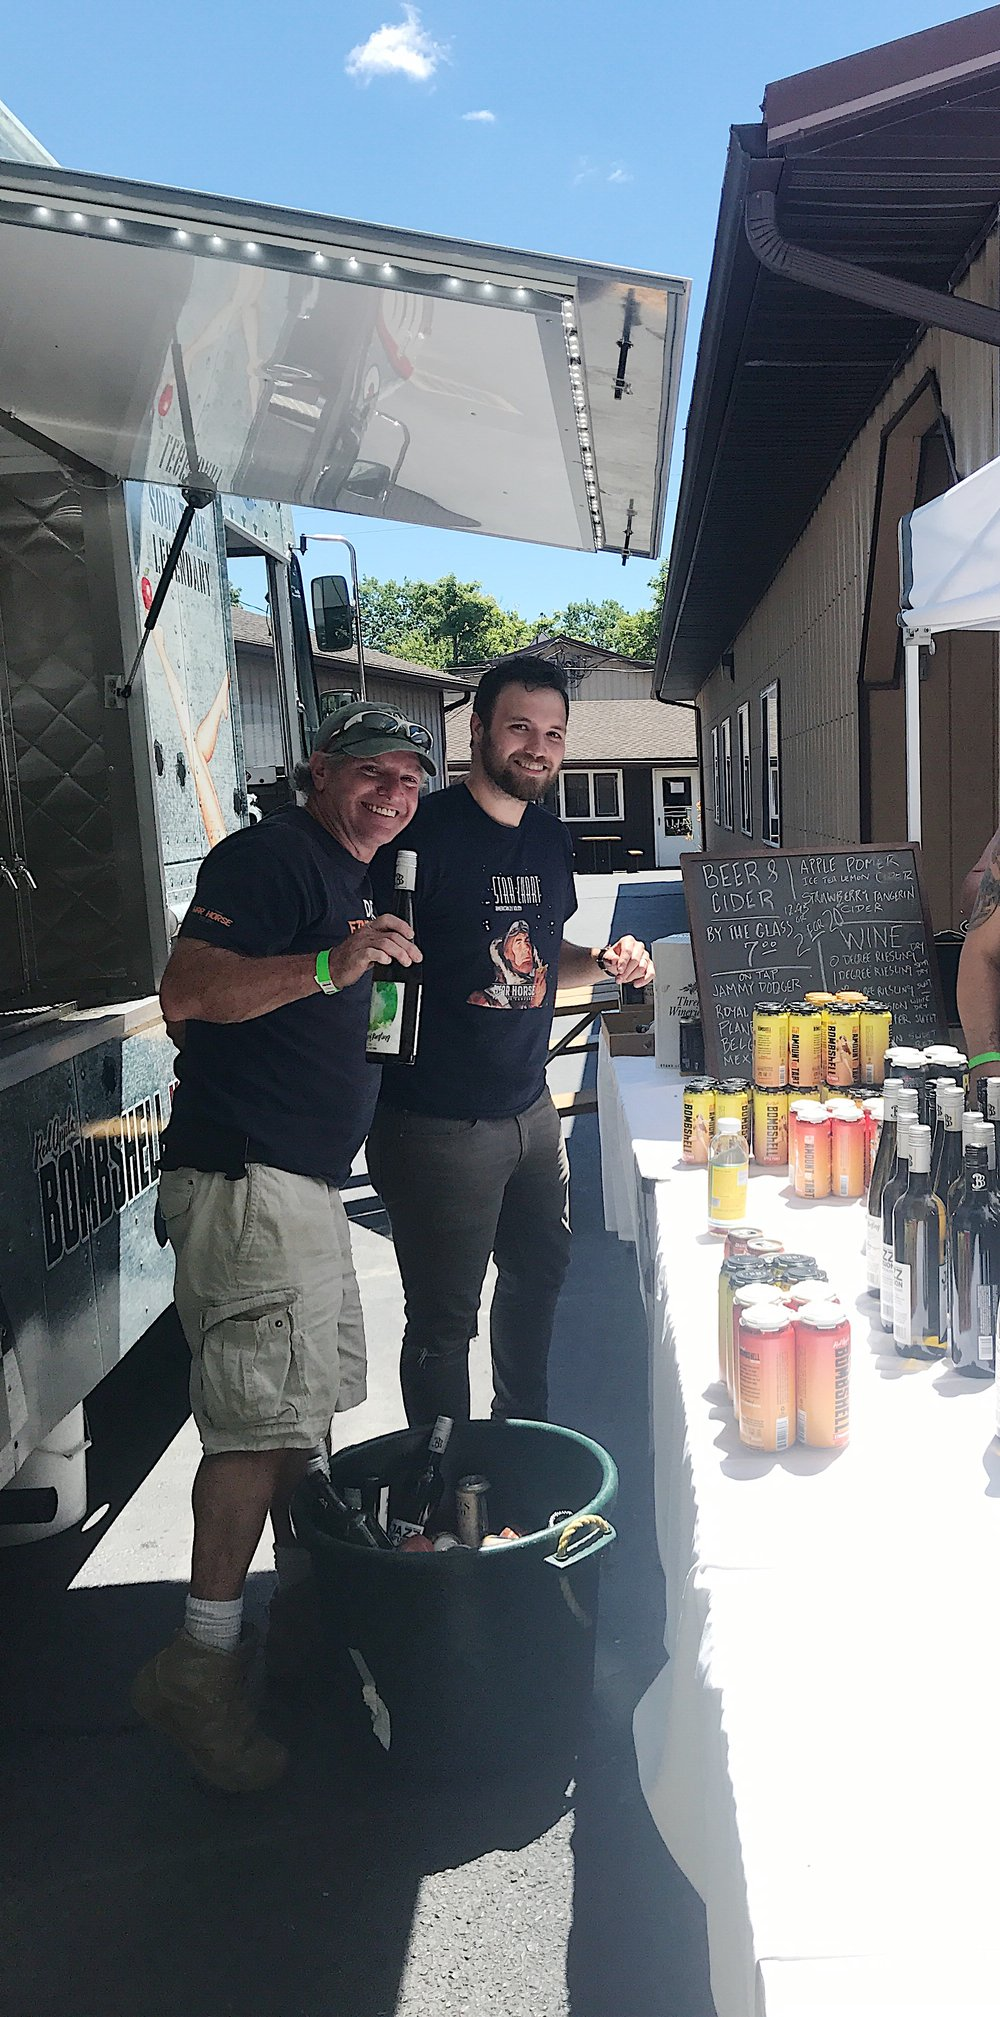 Photo of owner Dave Mansfield and his son Jon Mansfield pouring wine and hard cider at the War Horse Brewery beer truck